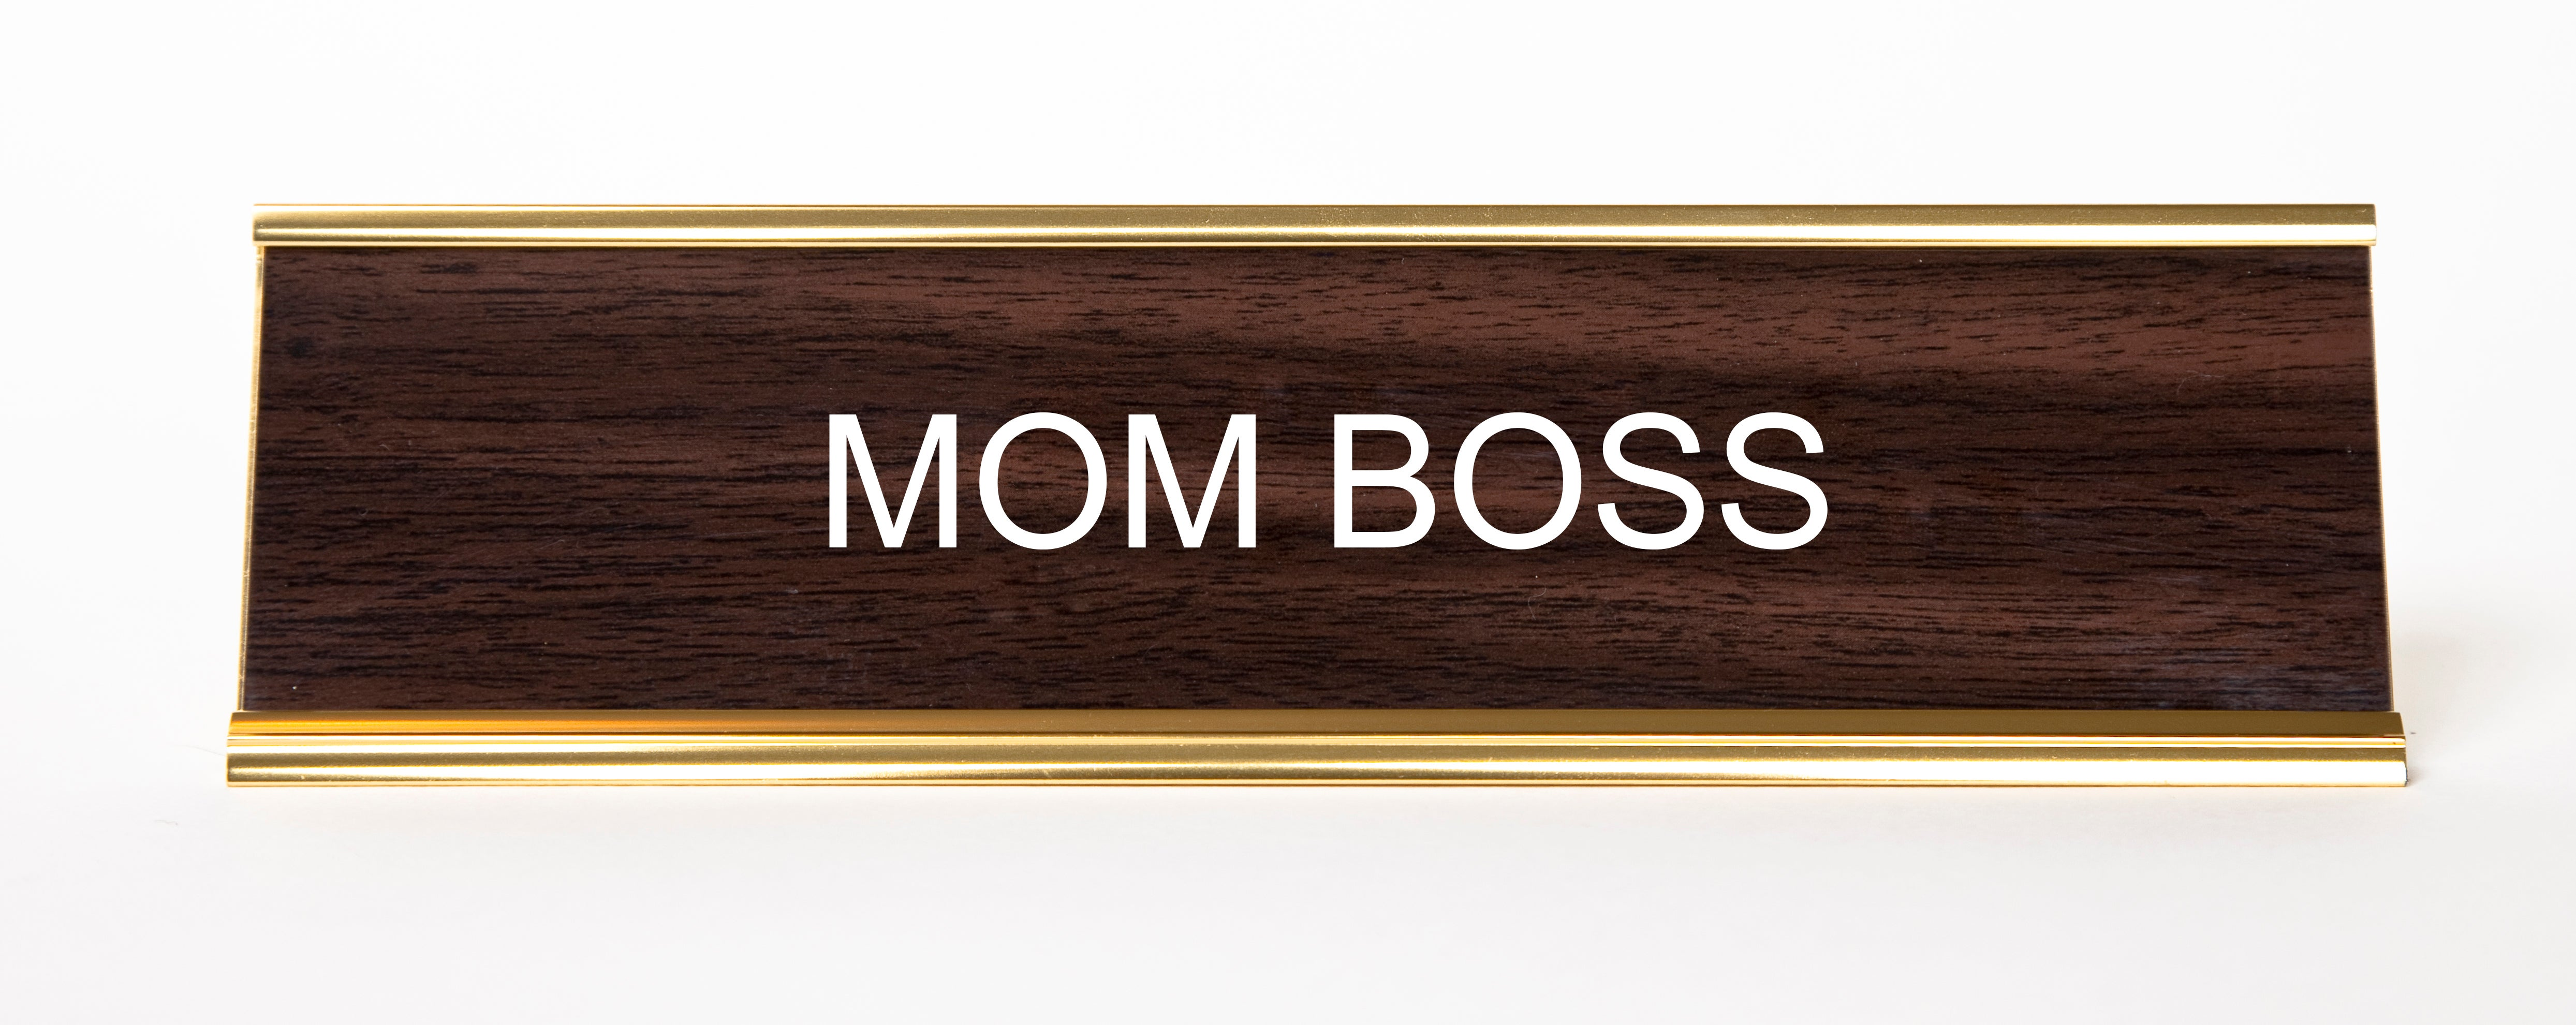 Mom Boss Nameplate Hesaidshesaid